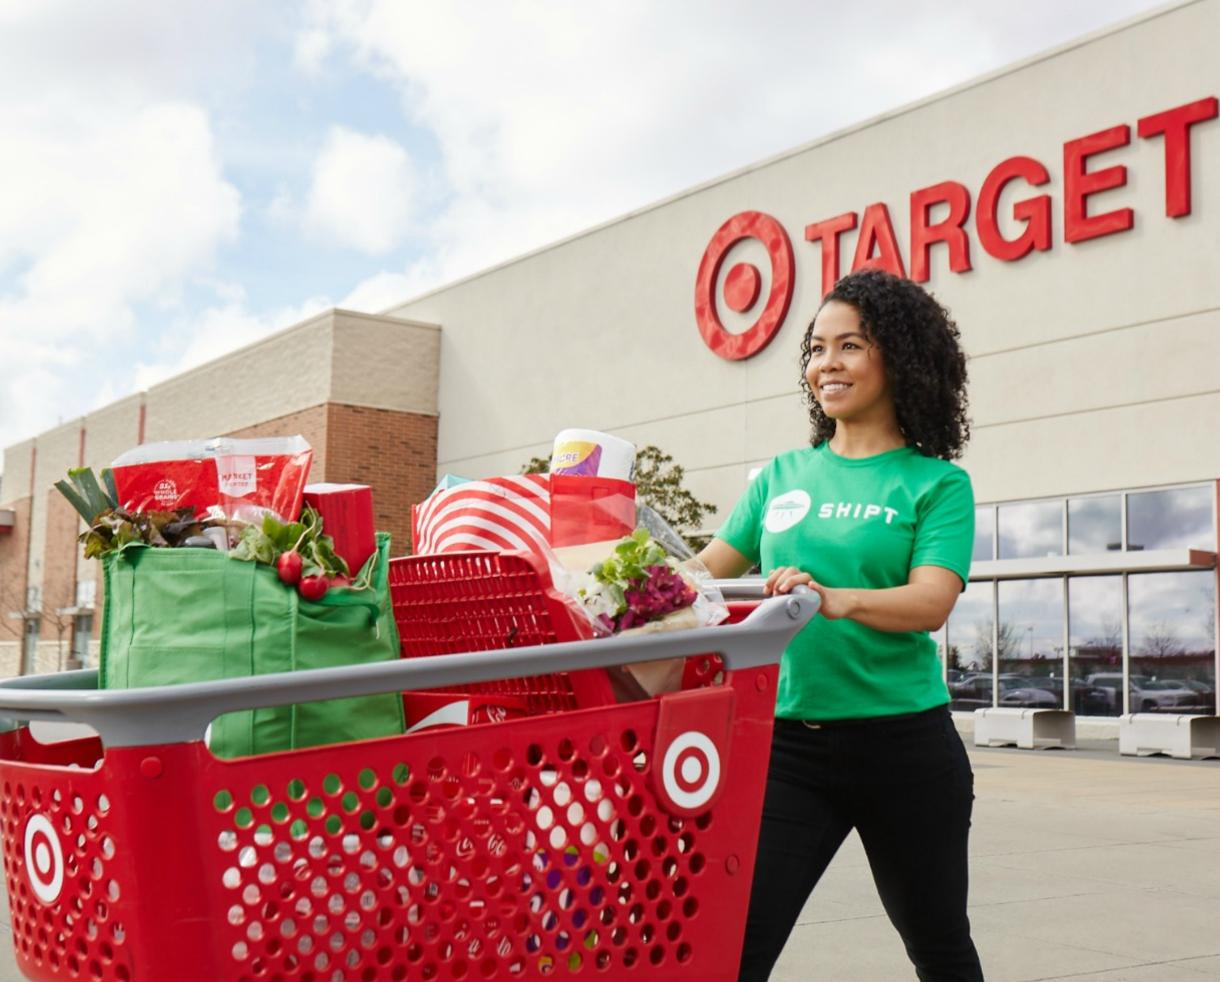 TARGET Delivered to Your Door in as Little as an Hour With Shipt!